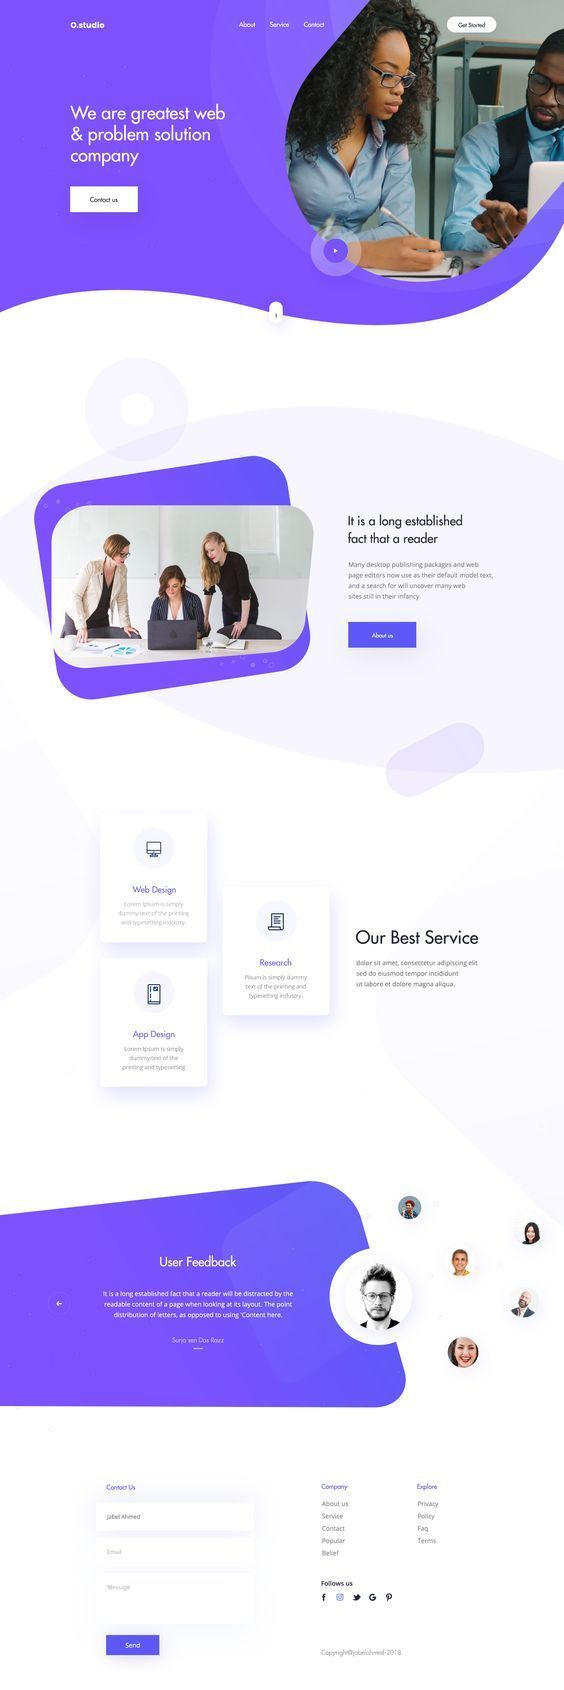 Guide Starting Your Own Website Design Company How To Freelance Find Customers And Grow Your Business Web Design Tips Website Design Company Web Design Tips Web Design